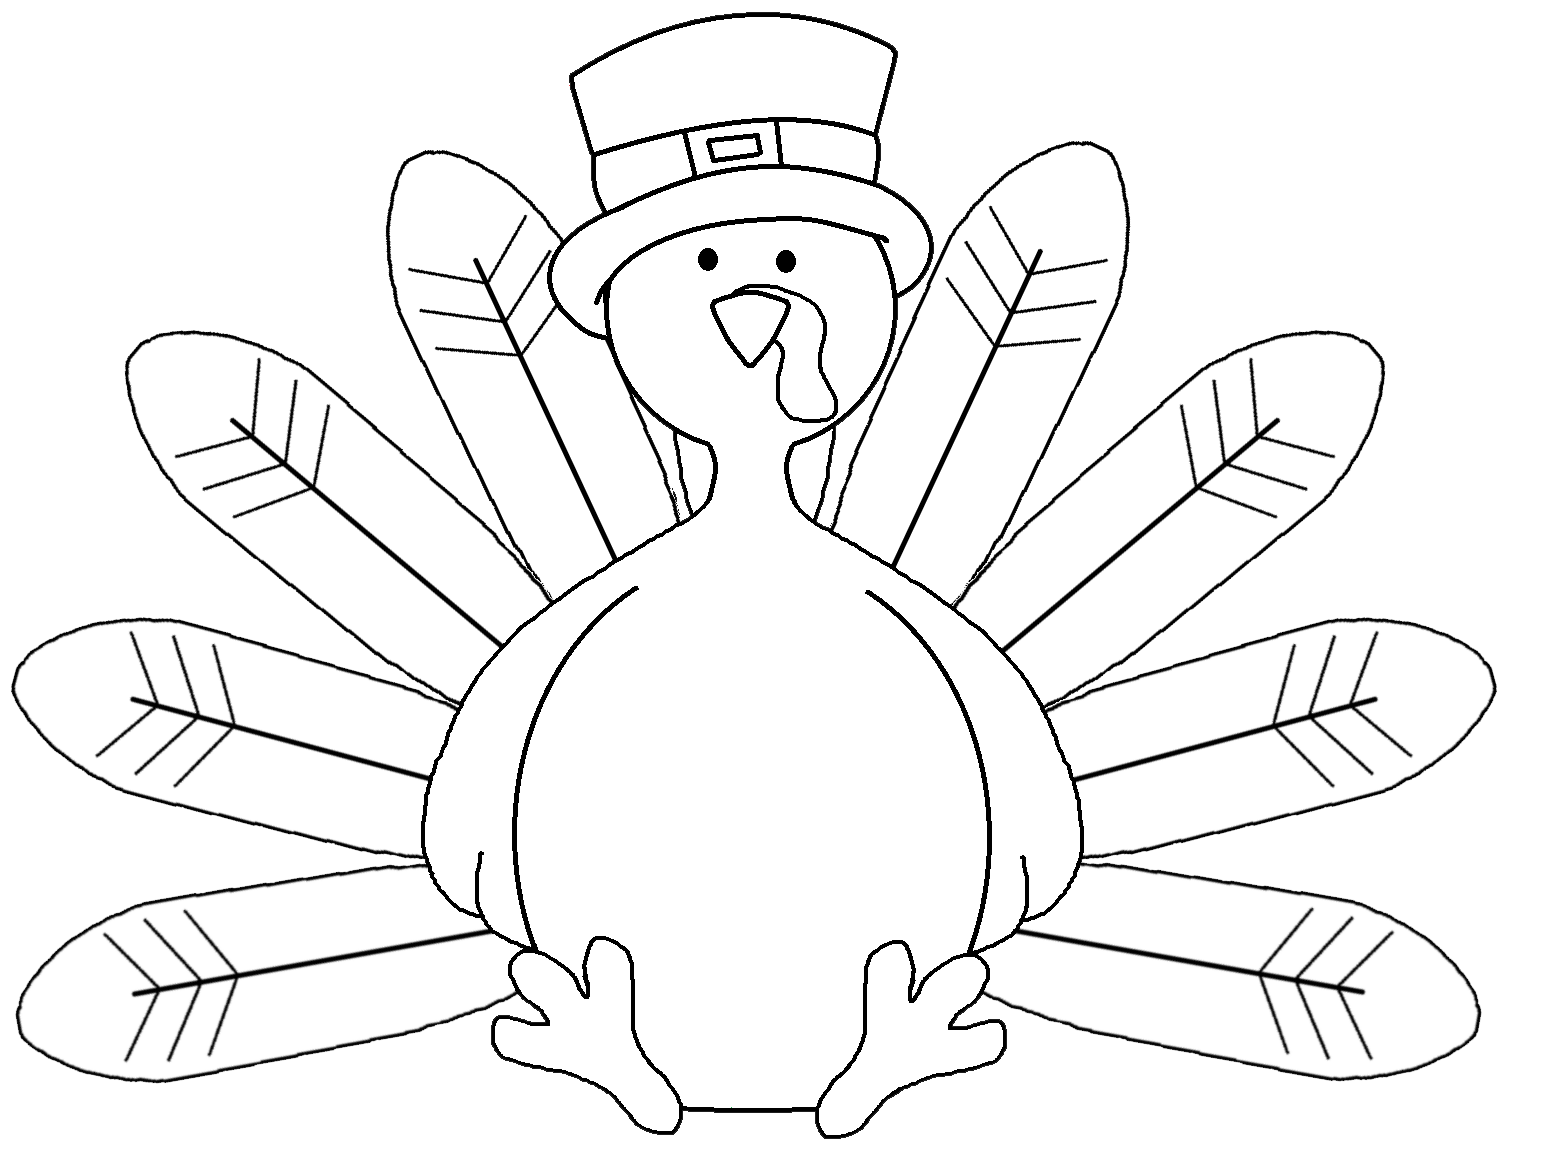 Turkey clipart outline jpg freeuse 28+ Collection of Large Thanksgiving Turkey Clipart | High quality ... jpg freeuse